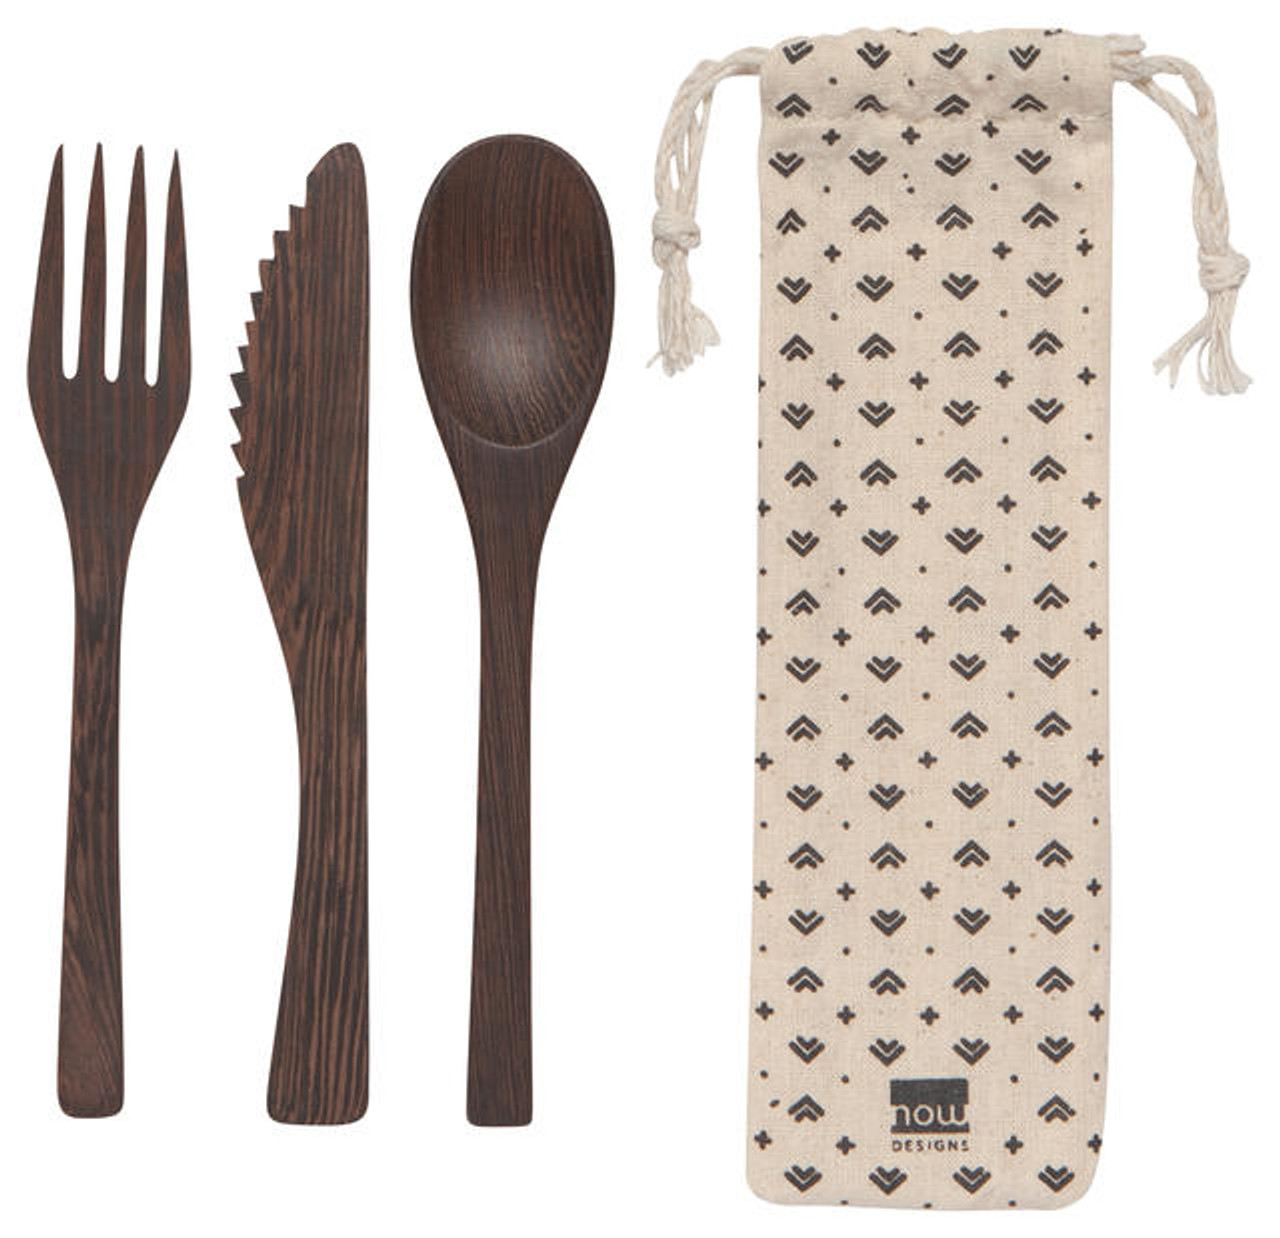 ON THE GO CUTLERY - SET OF 3